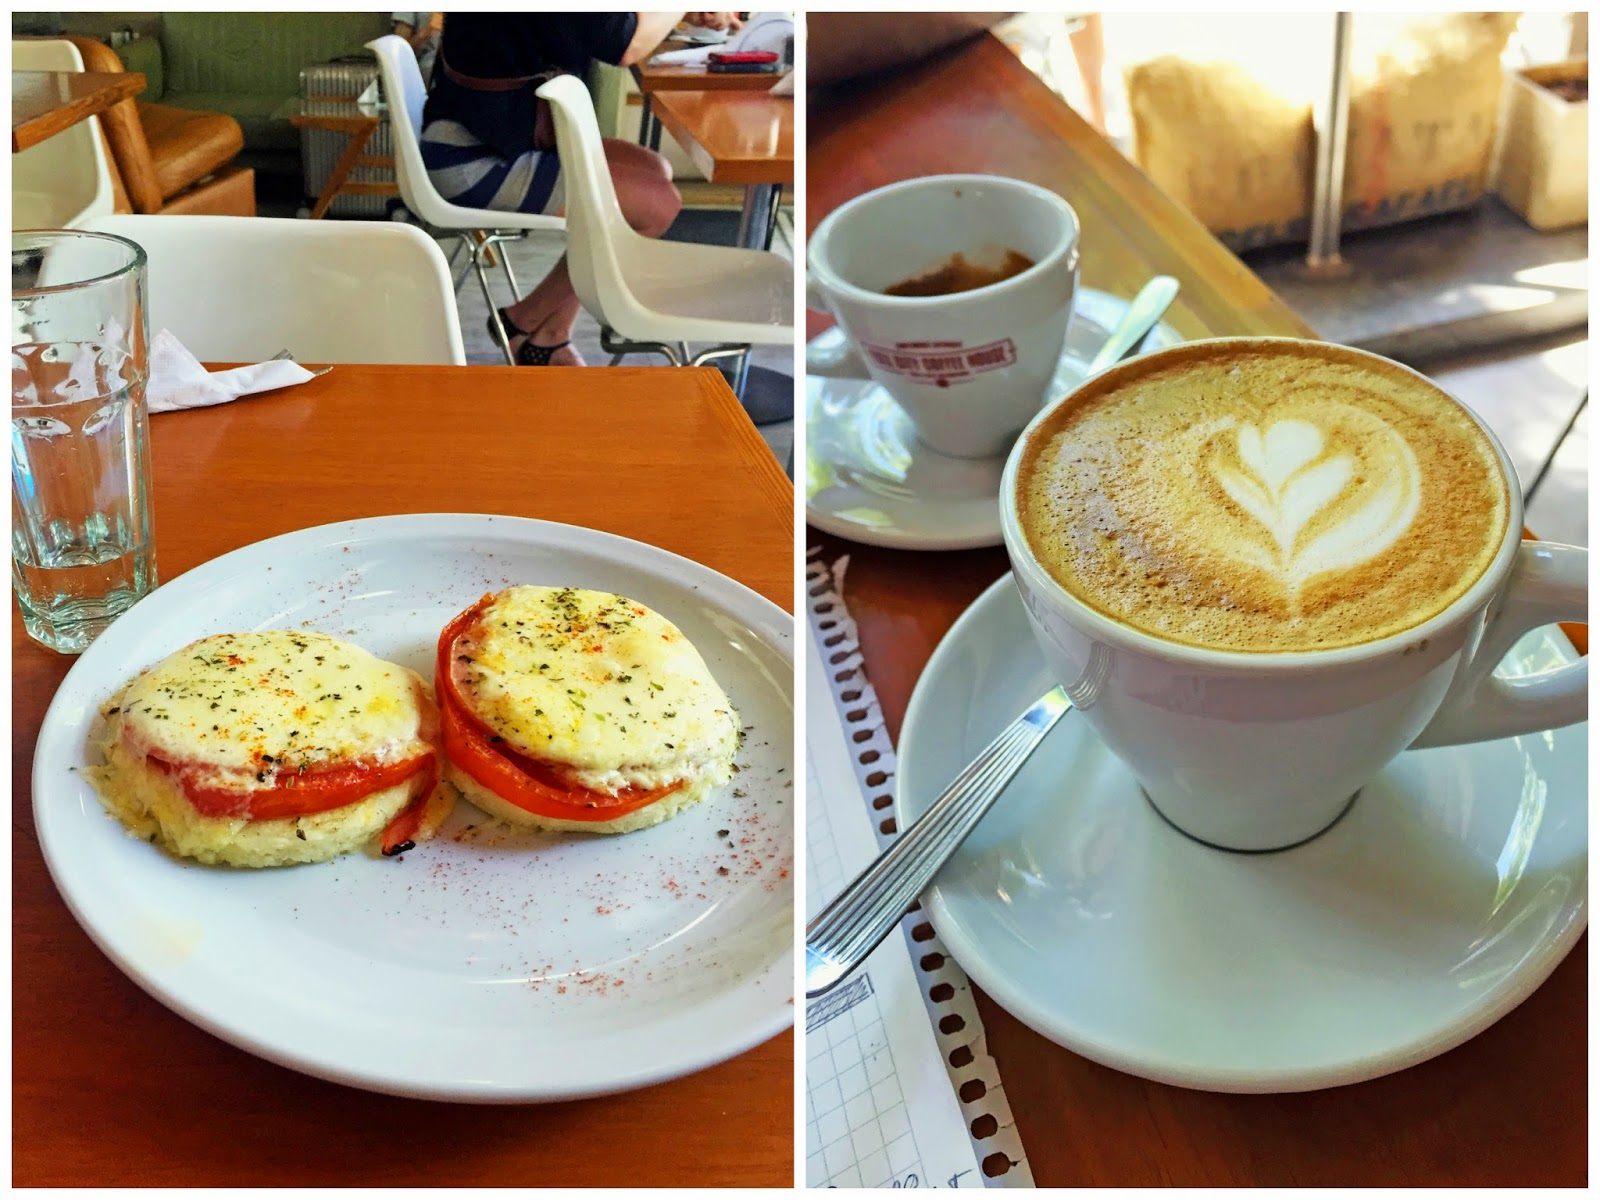 Full City Coffee House Buenos Aires café colombiano y arepas